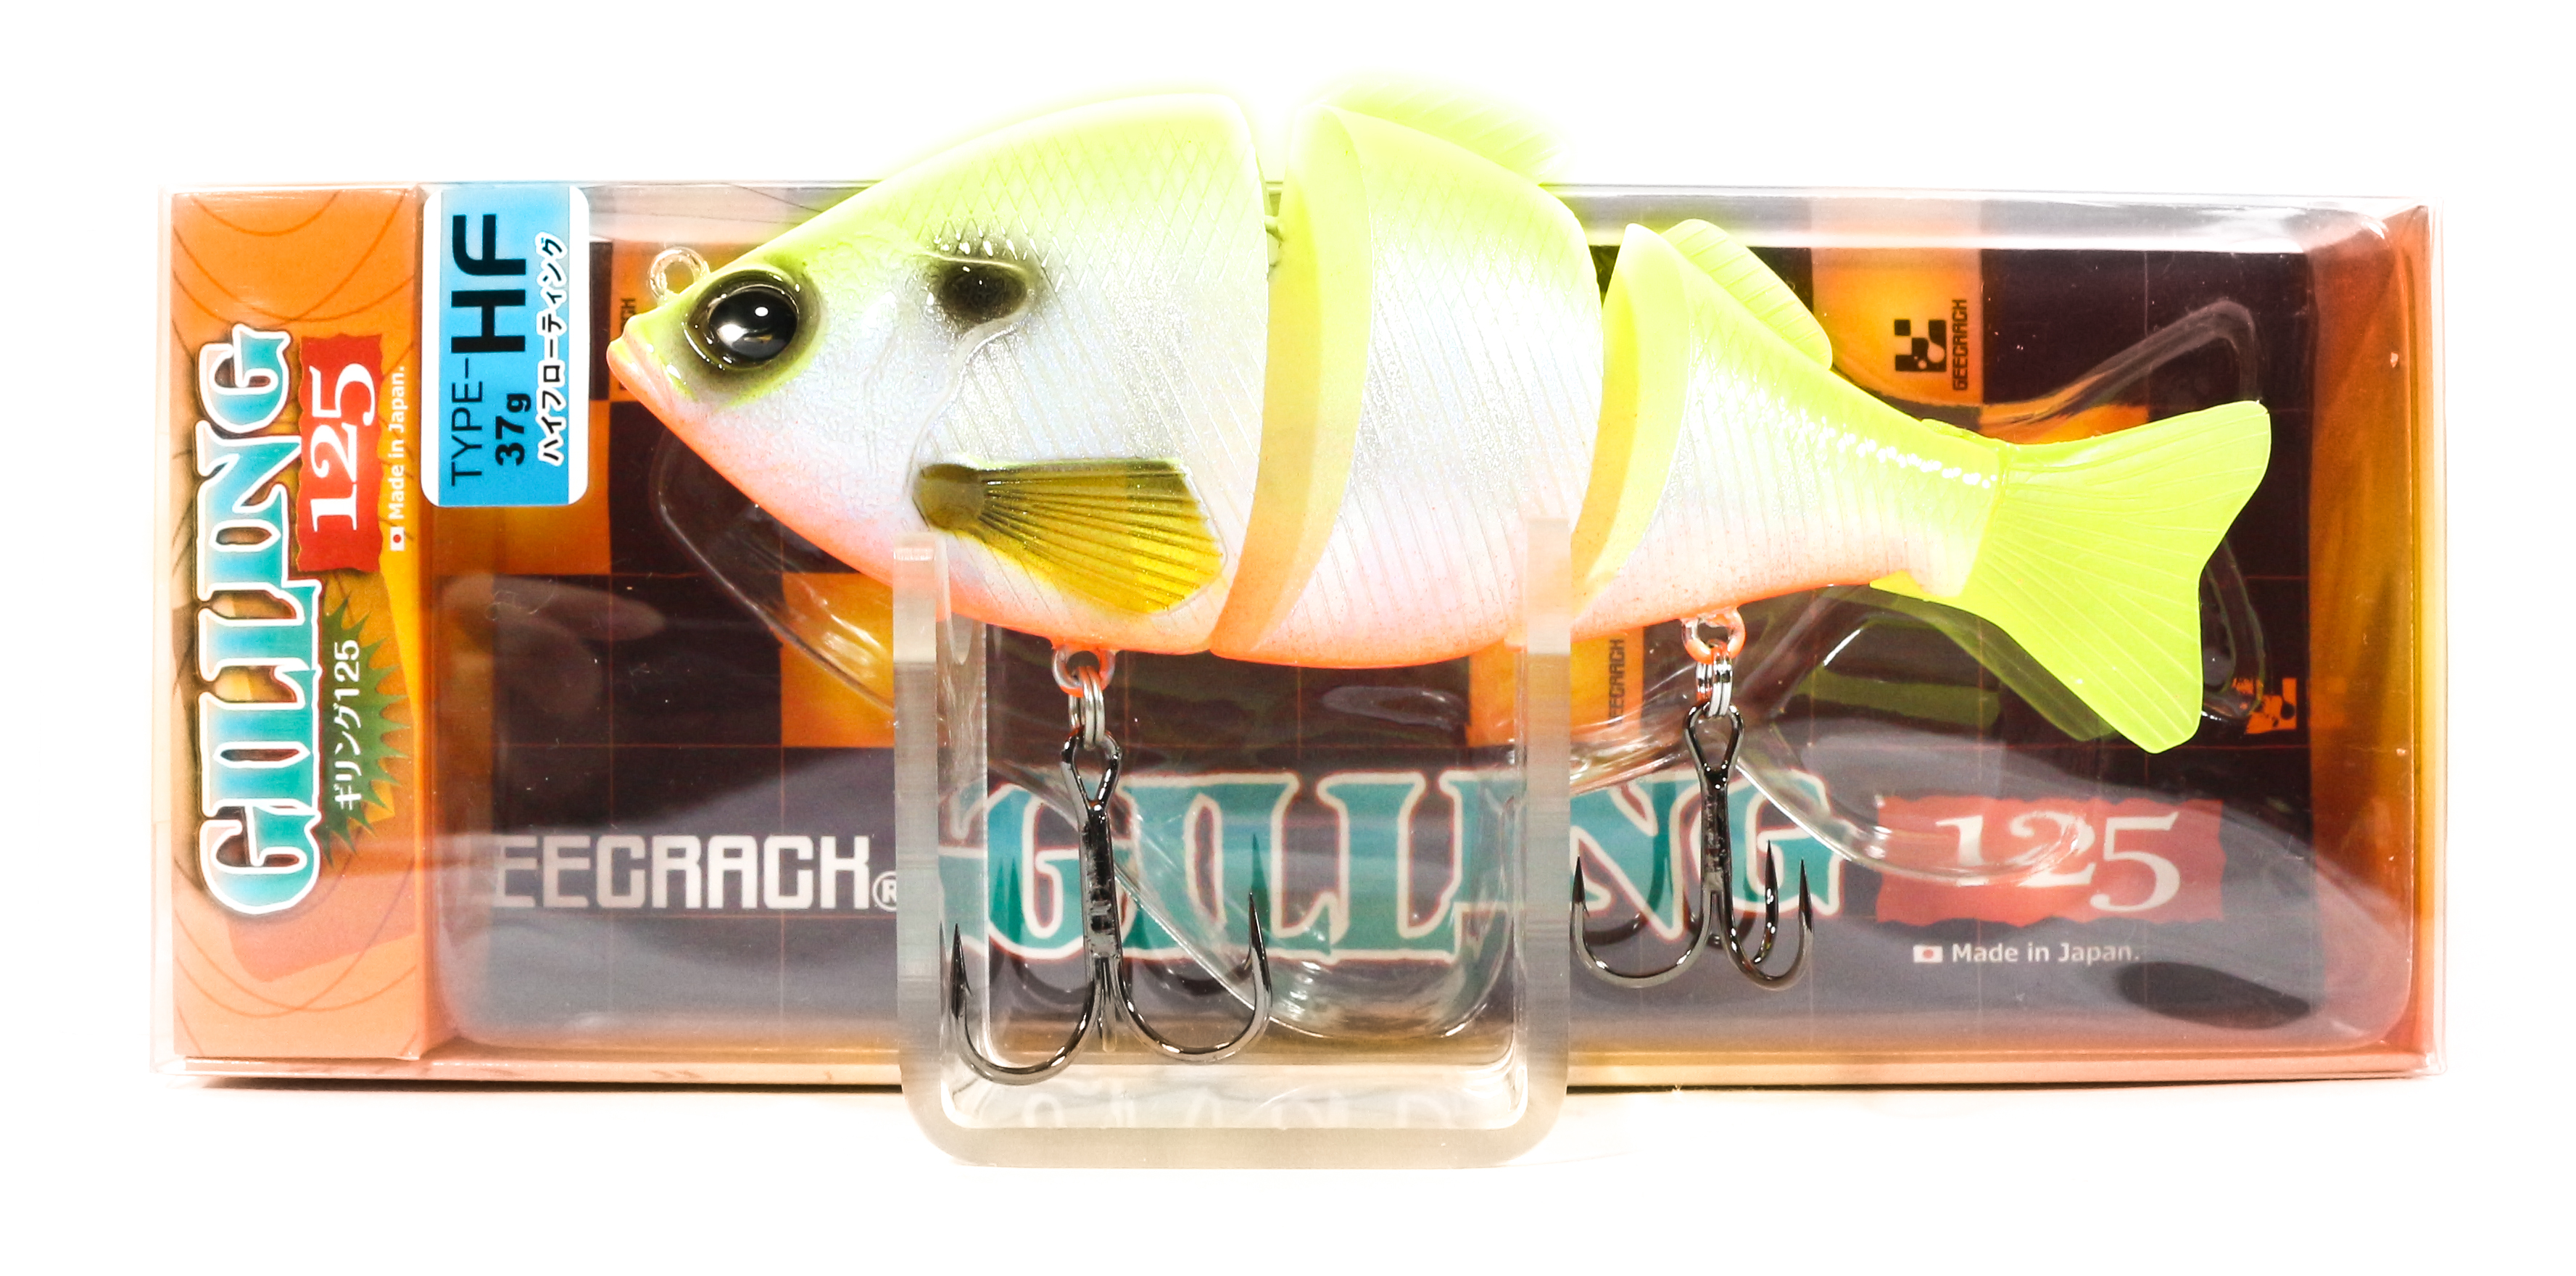 Sale Gee Crack Gilling 125 HF Jointed High Floating Lure 032 (8423)